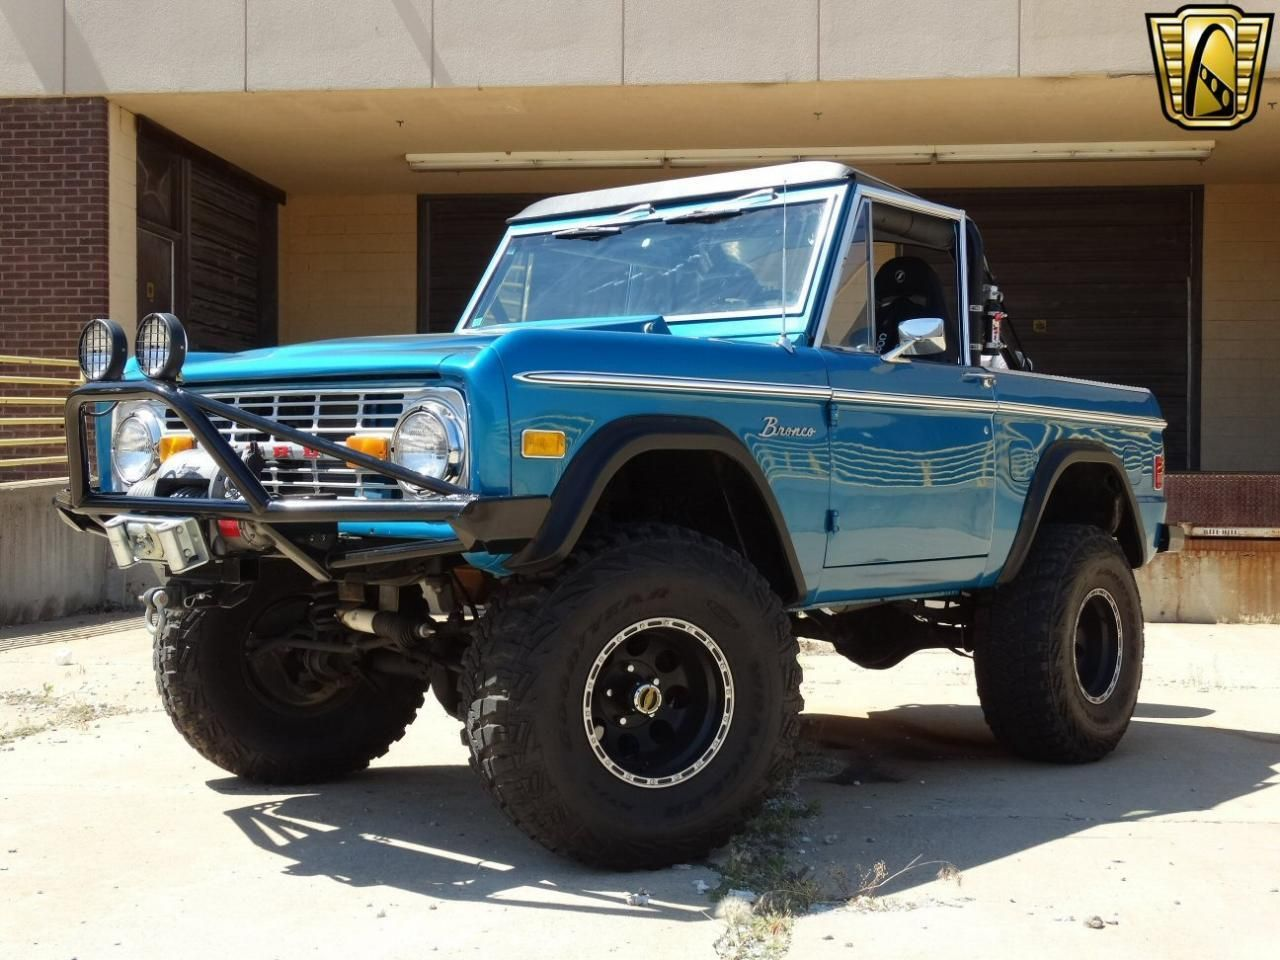 Ford Bronco | Old School SUV\'s | Pinterest | Ford bronco and Ford